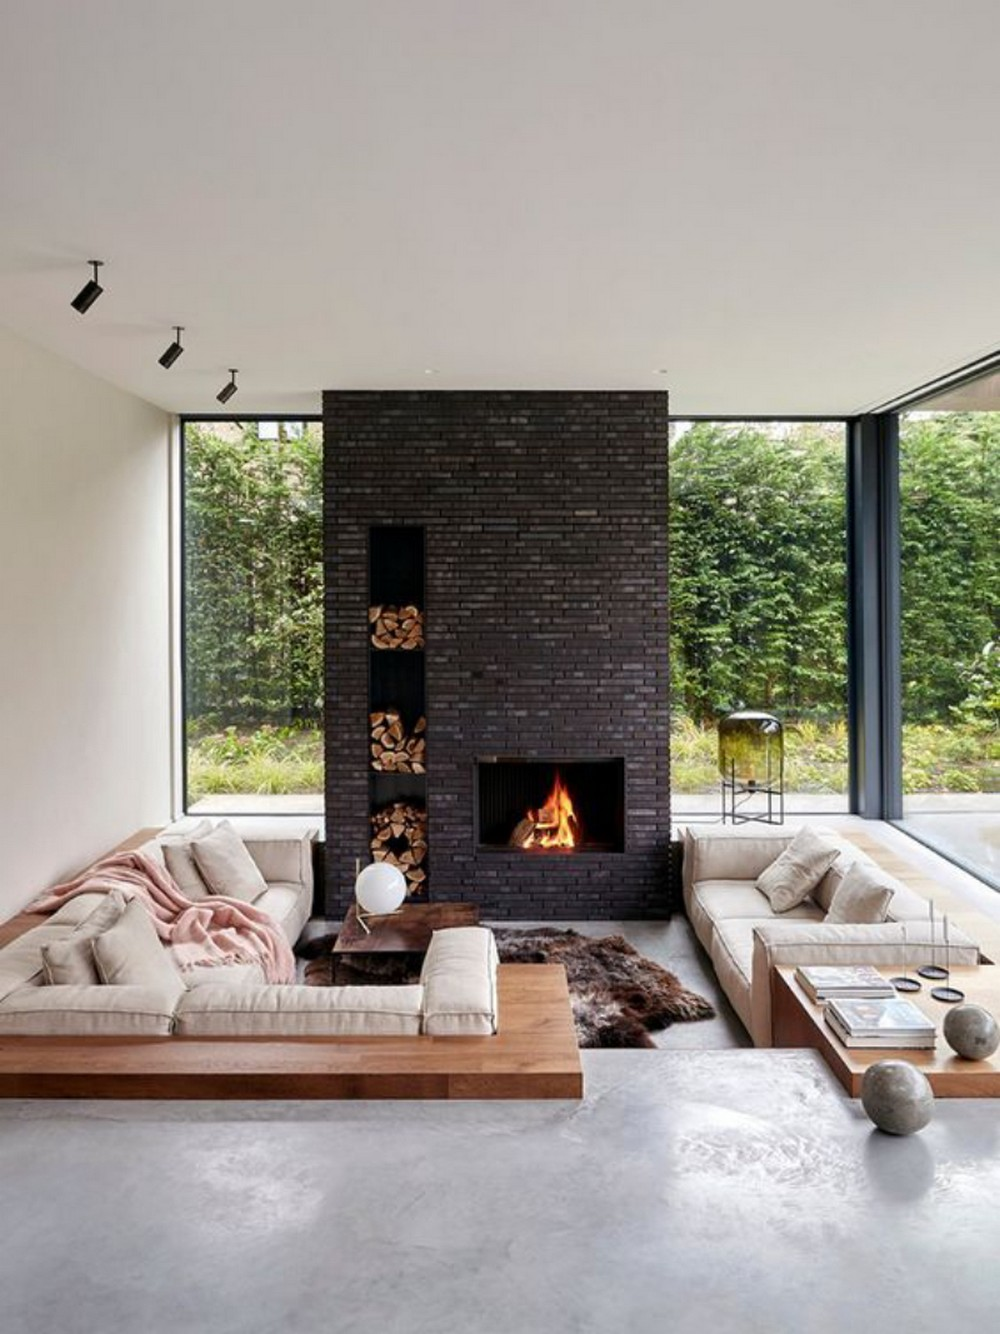 design trends Check out some of the best interior design trends of the USA Marmol Radziner1